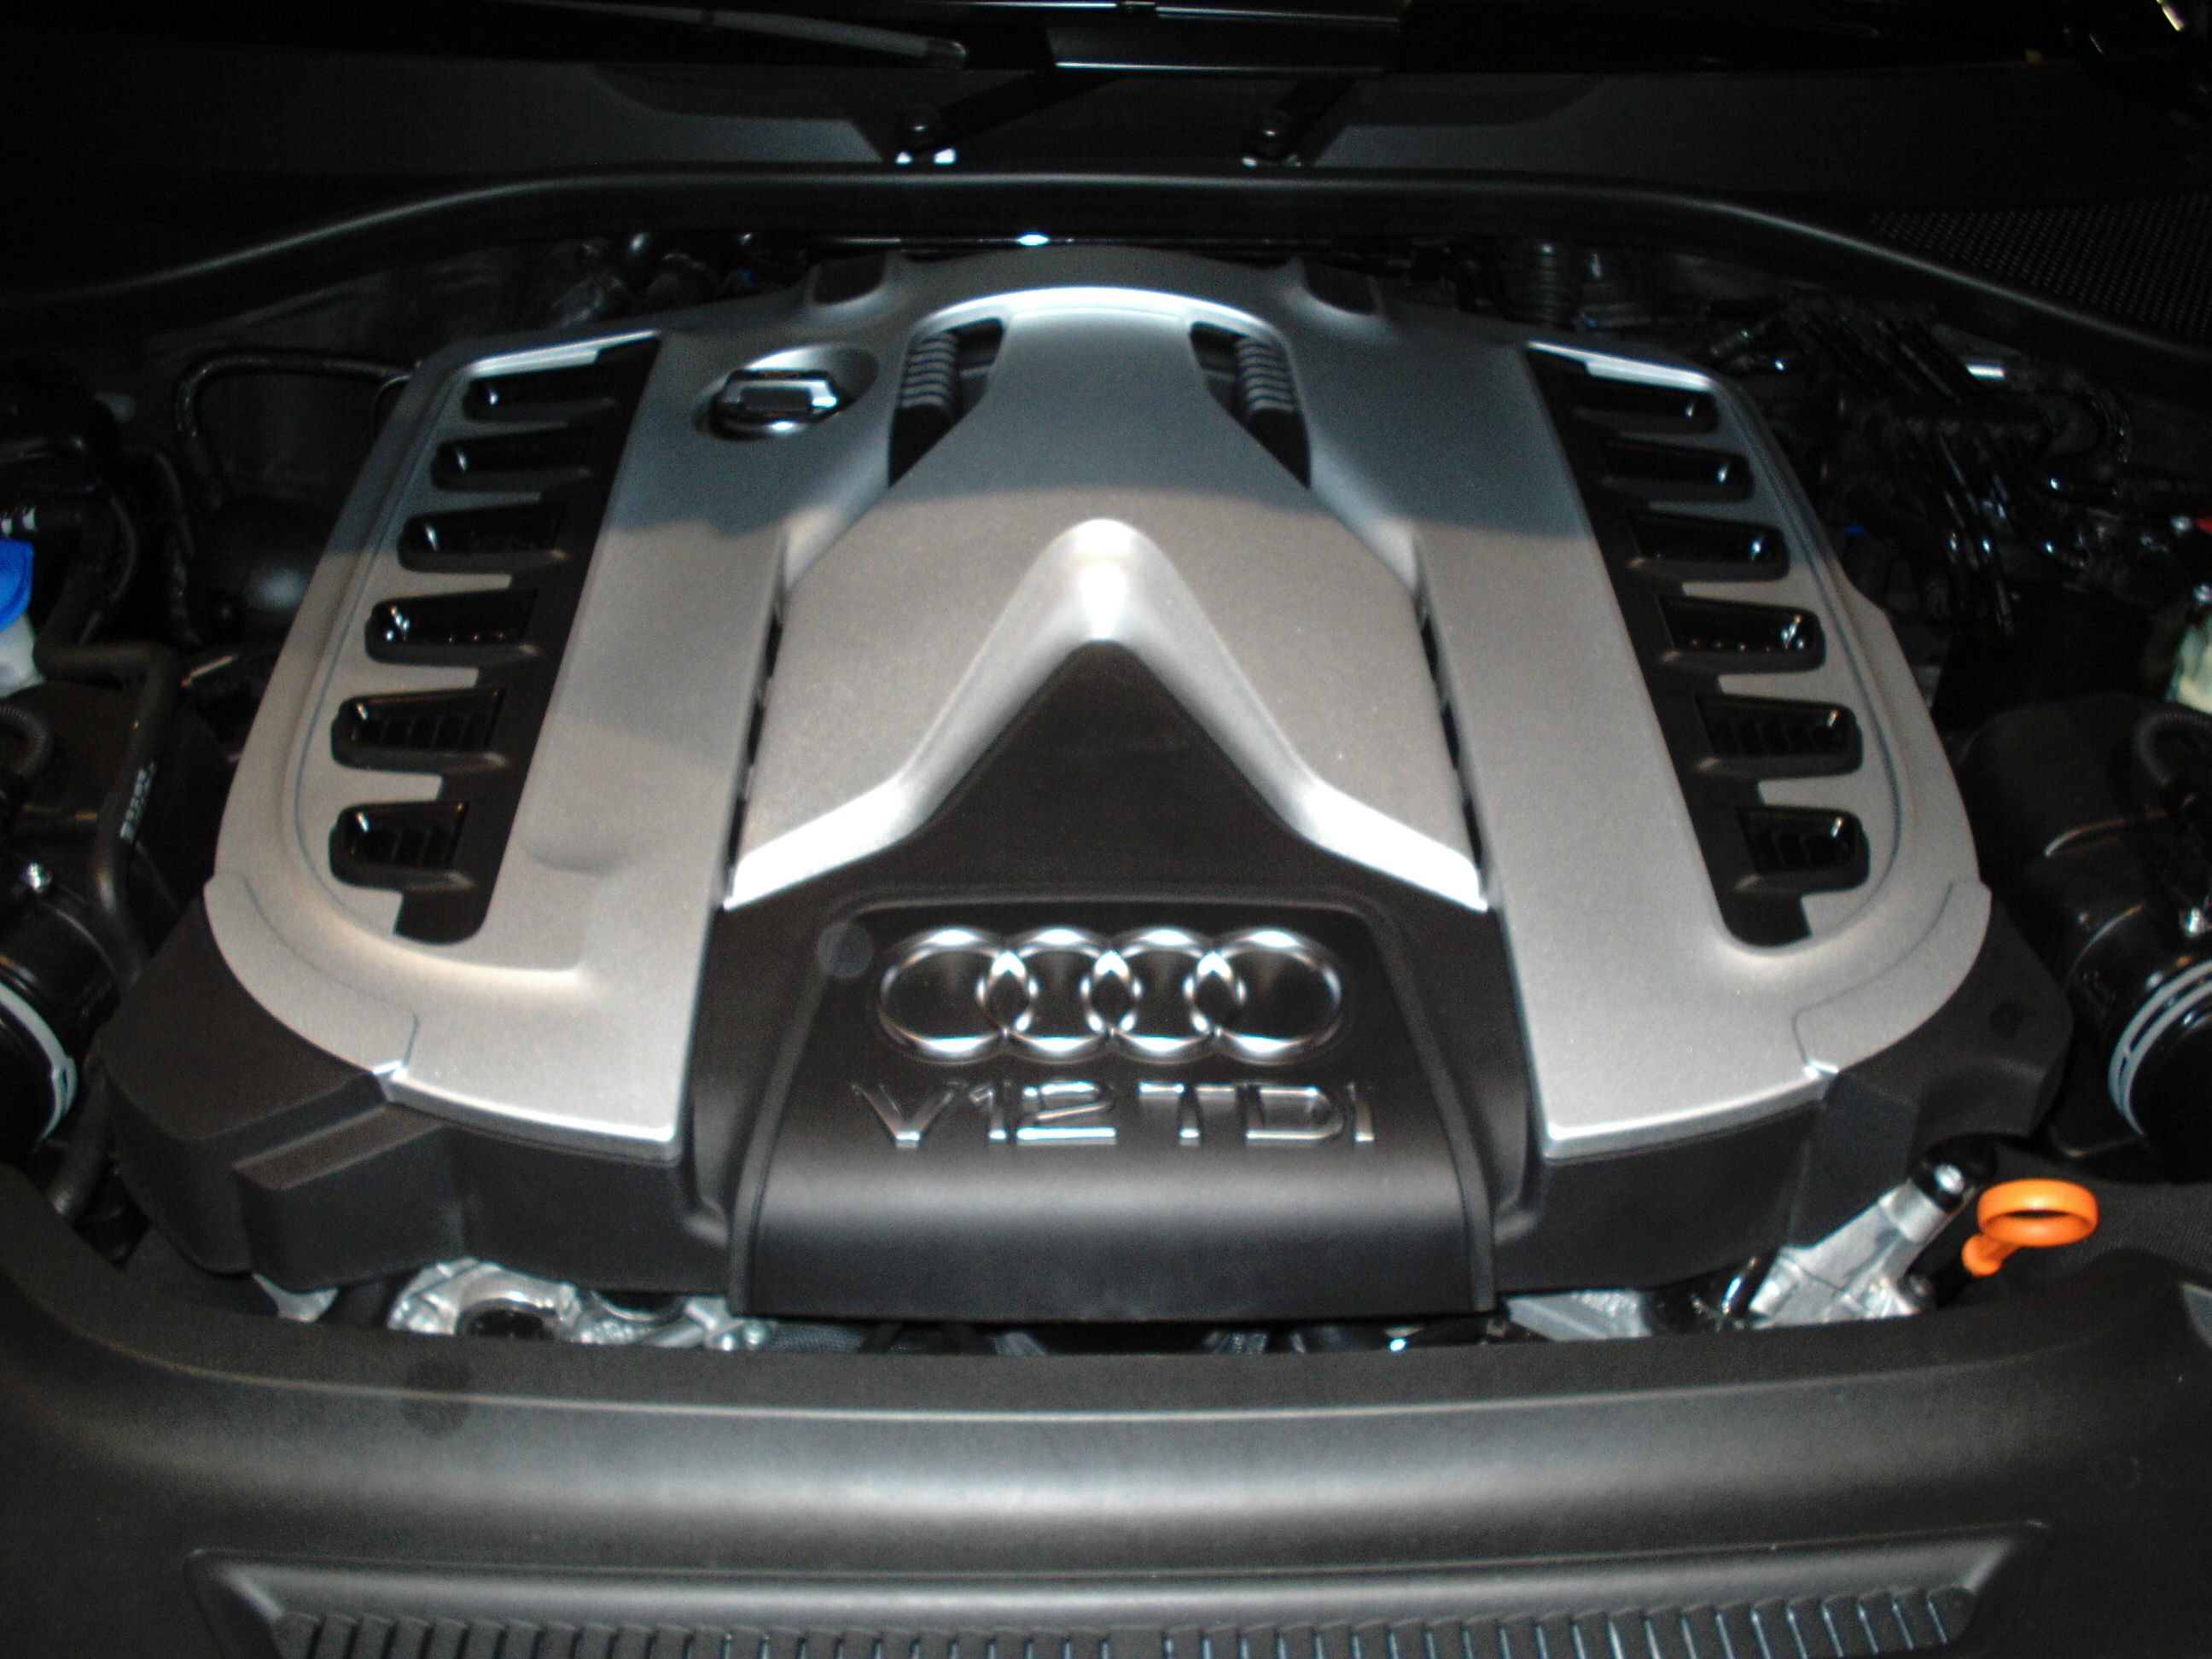 File Audi Q7 V12 Tdi Engine Front View Jpg Wikimedia Commons